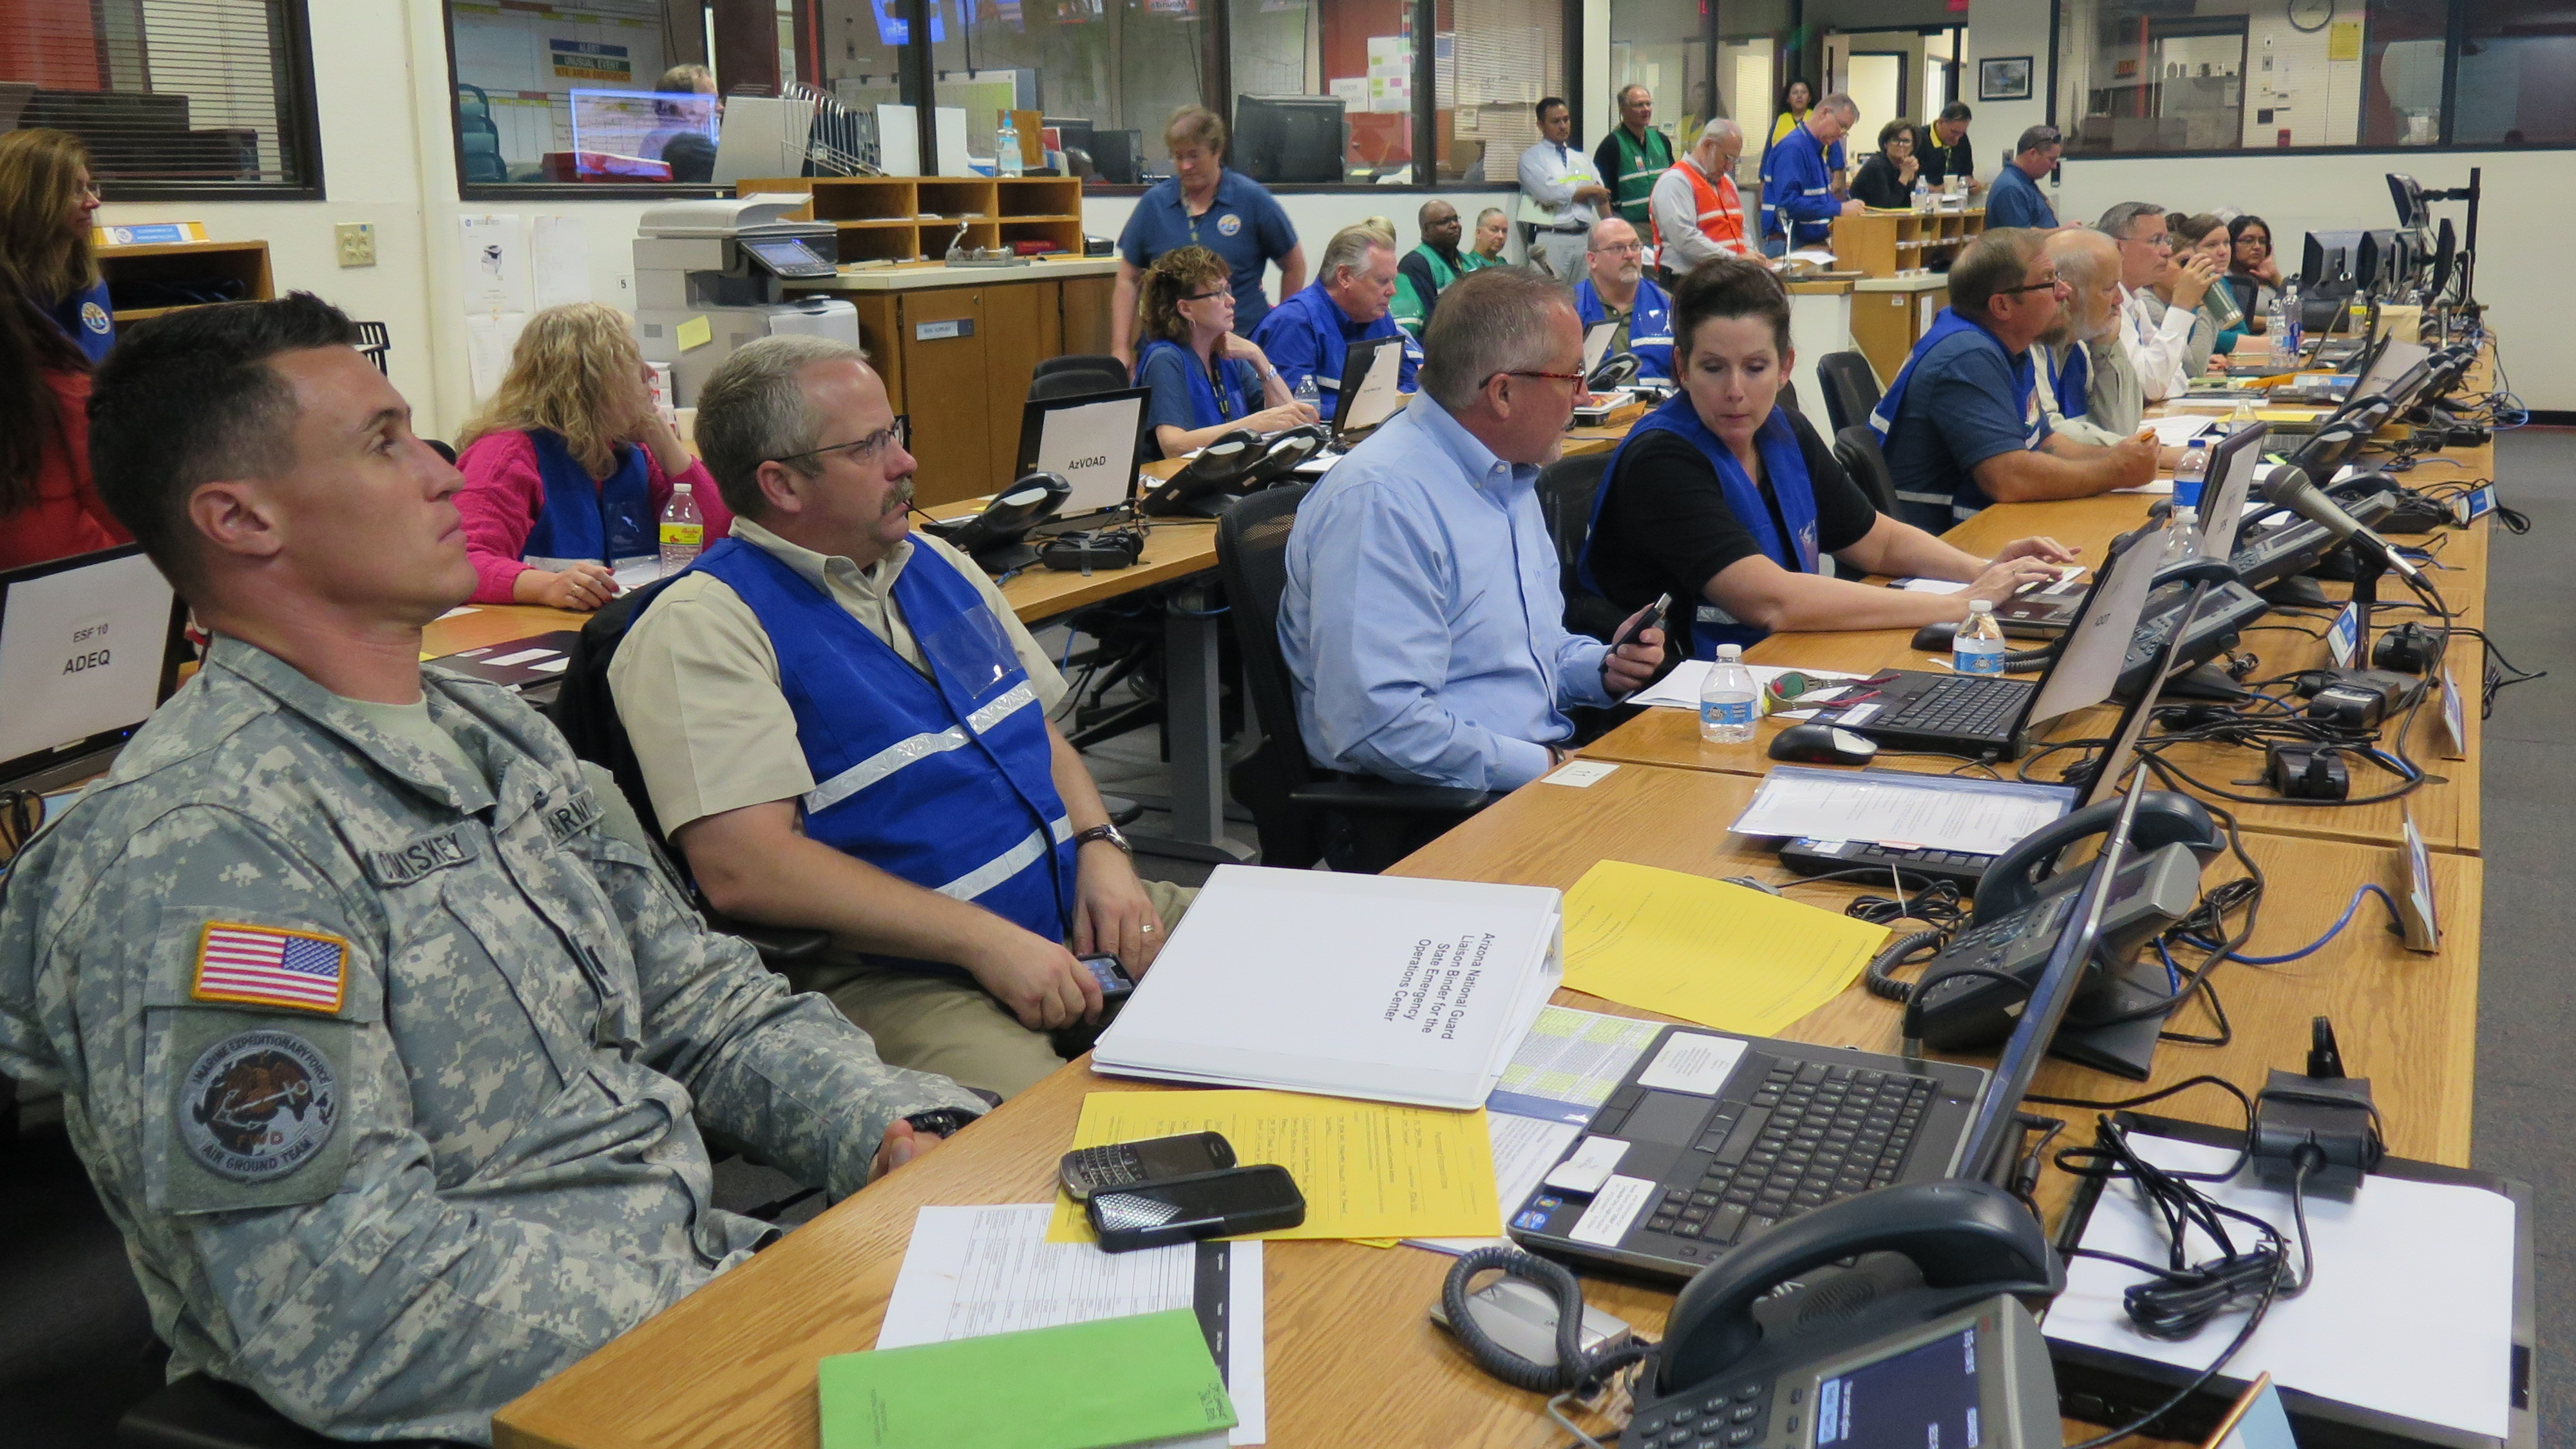 People working in the SEOC during the 2015 Statewide Earthquake exercise.